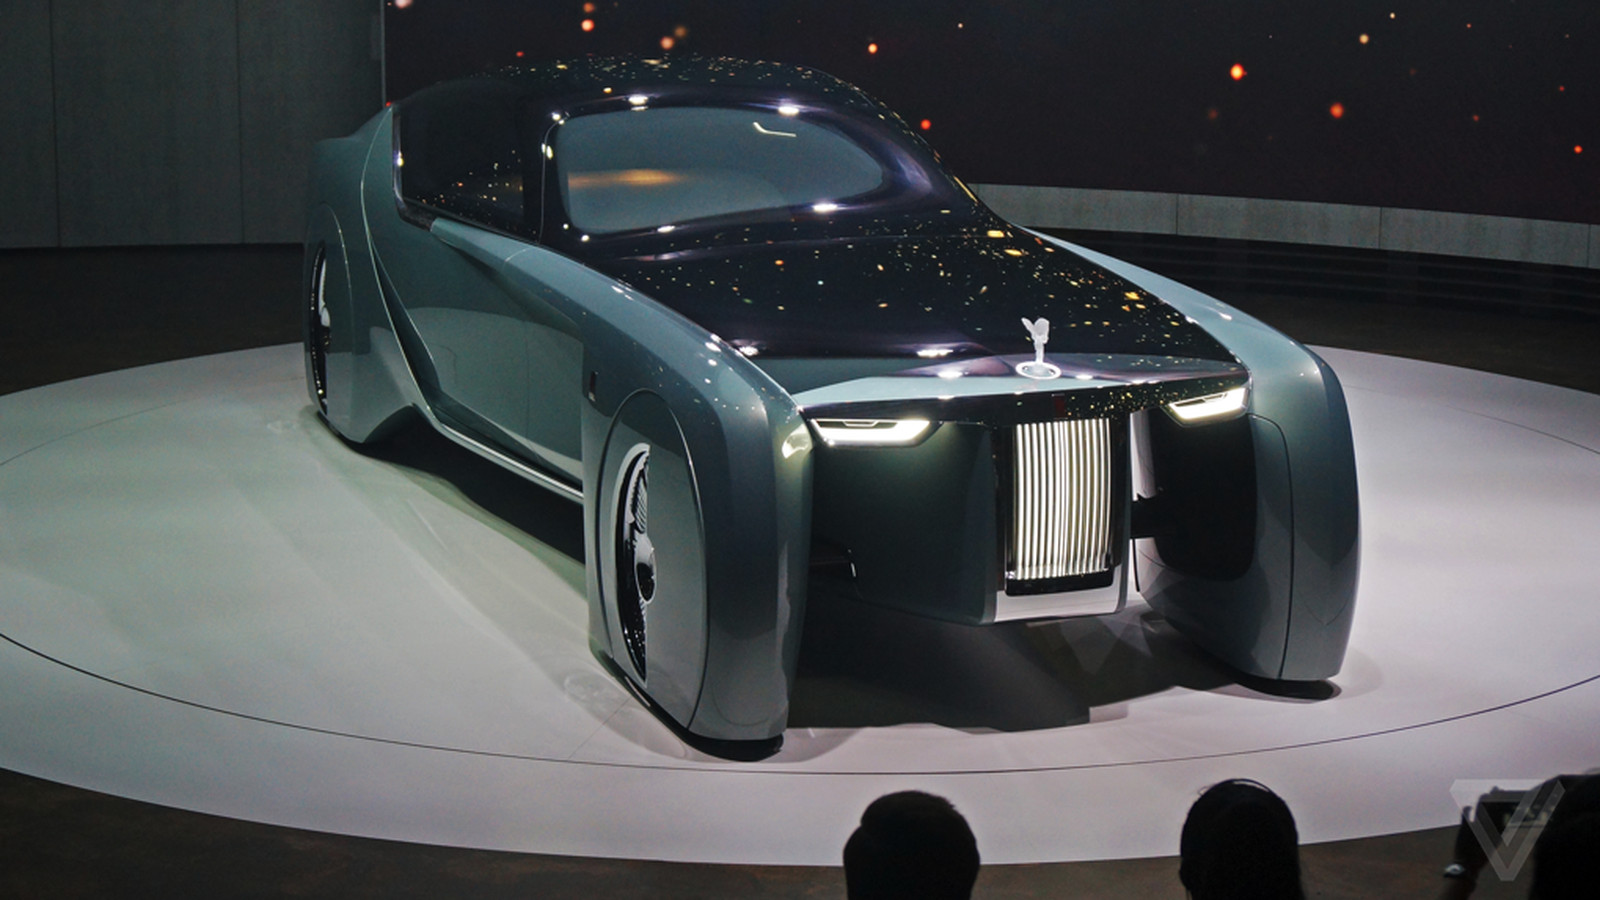 Get Inside Rolls Royce S Unbelievable Vision 100 Concept Car In 360 Degrees The Verge